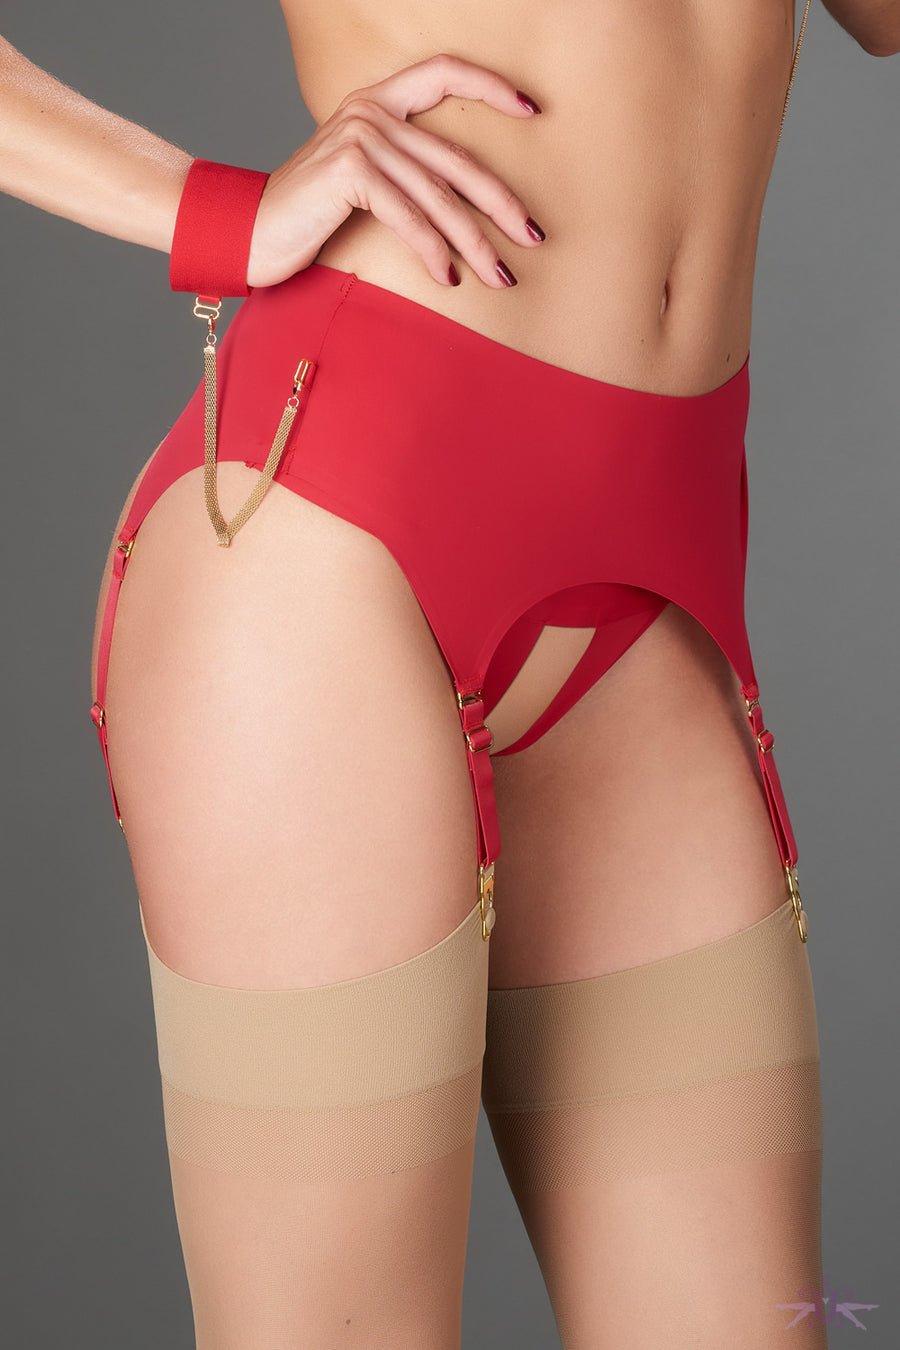 Maison Close Tapage Nocturne Red Garter Belt